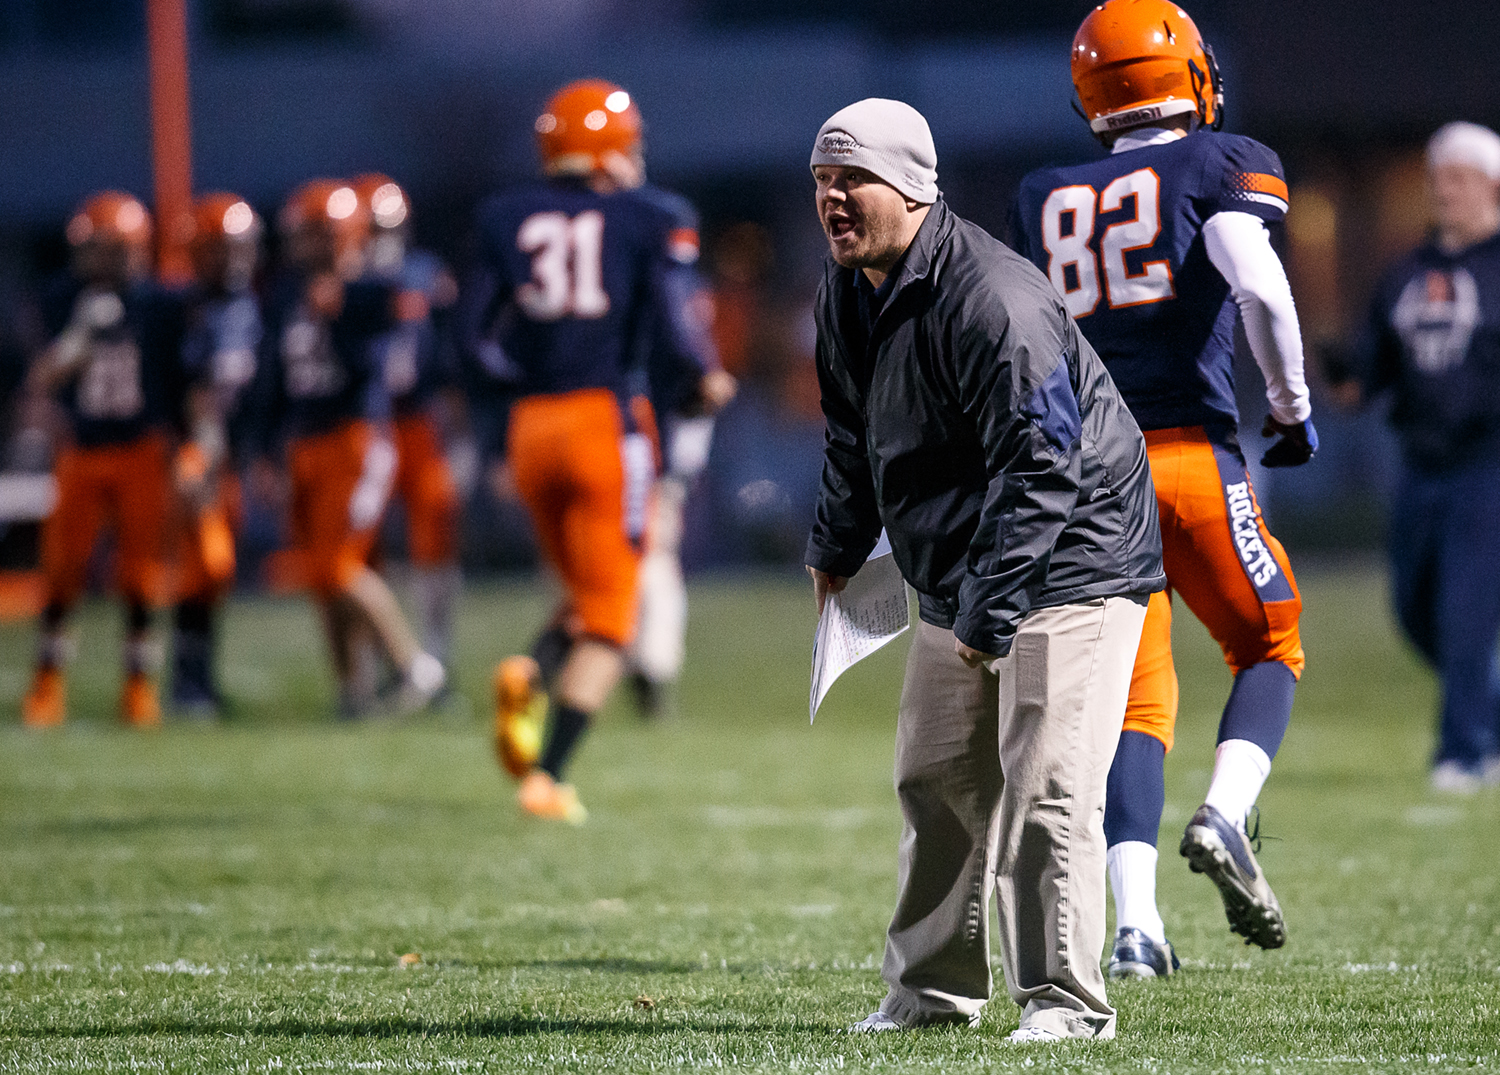 Rochester head football coach Derek Leonard calls out instructions to his players as they take on Mt. Zion in the first half during the first round of the Class 4A playoffs at Rocket Booster Field, Saturday, Nov. 1, 2014, in Rochester, Ill. Justin L. Fowler/The State Journal-Register